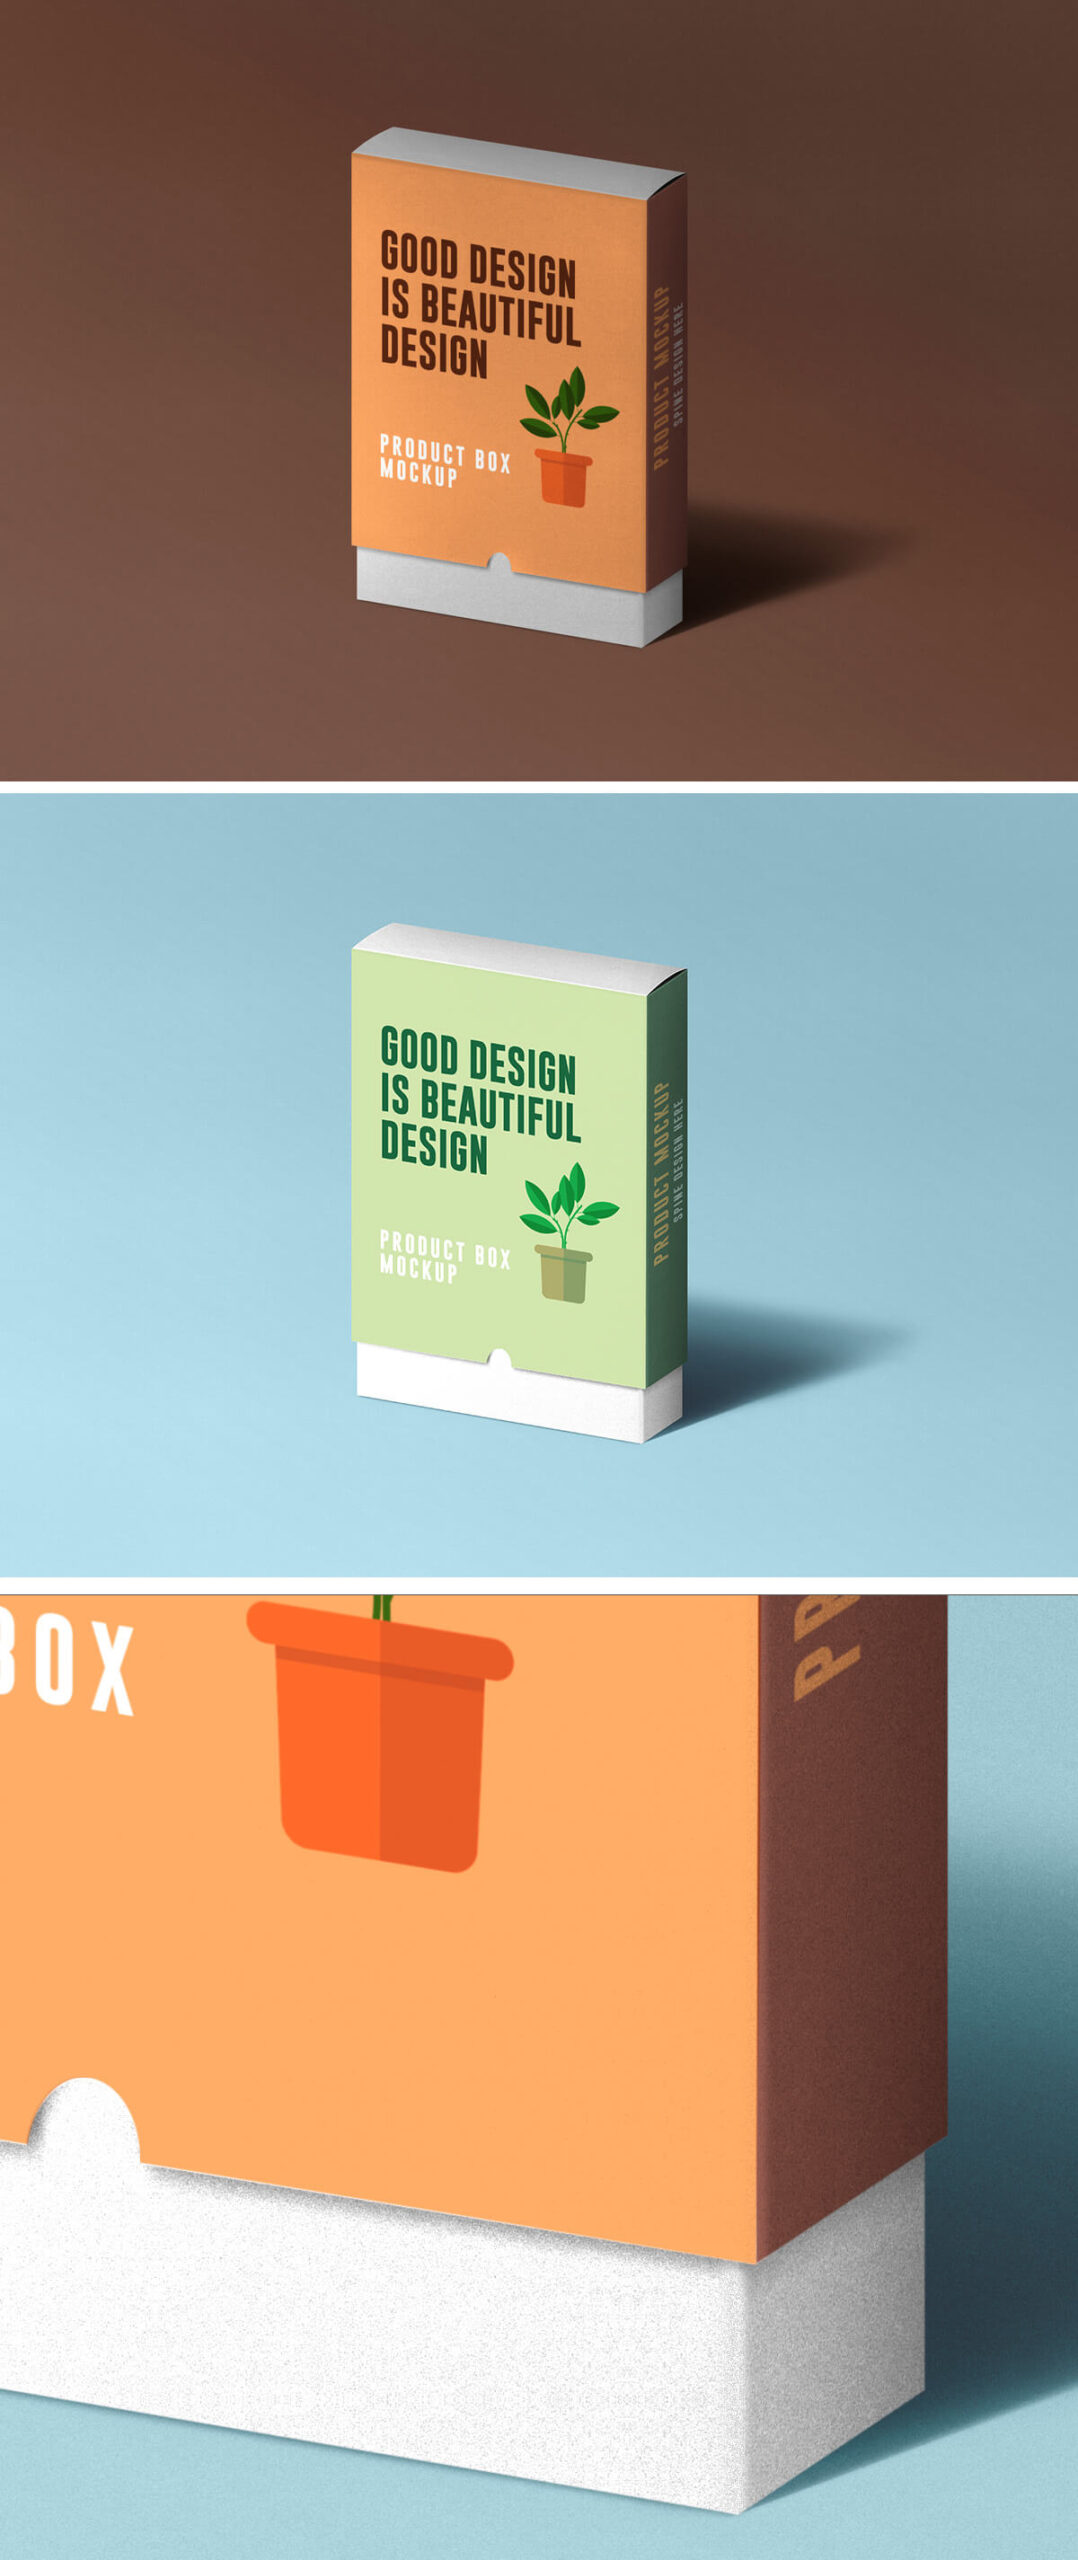 Download Free Slide Product Box Mockup PSD Template